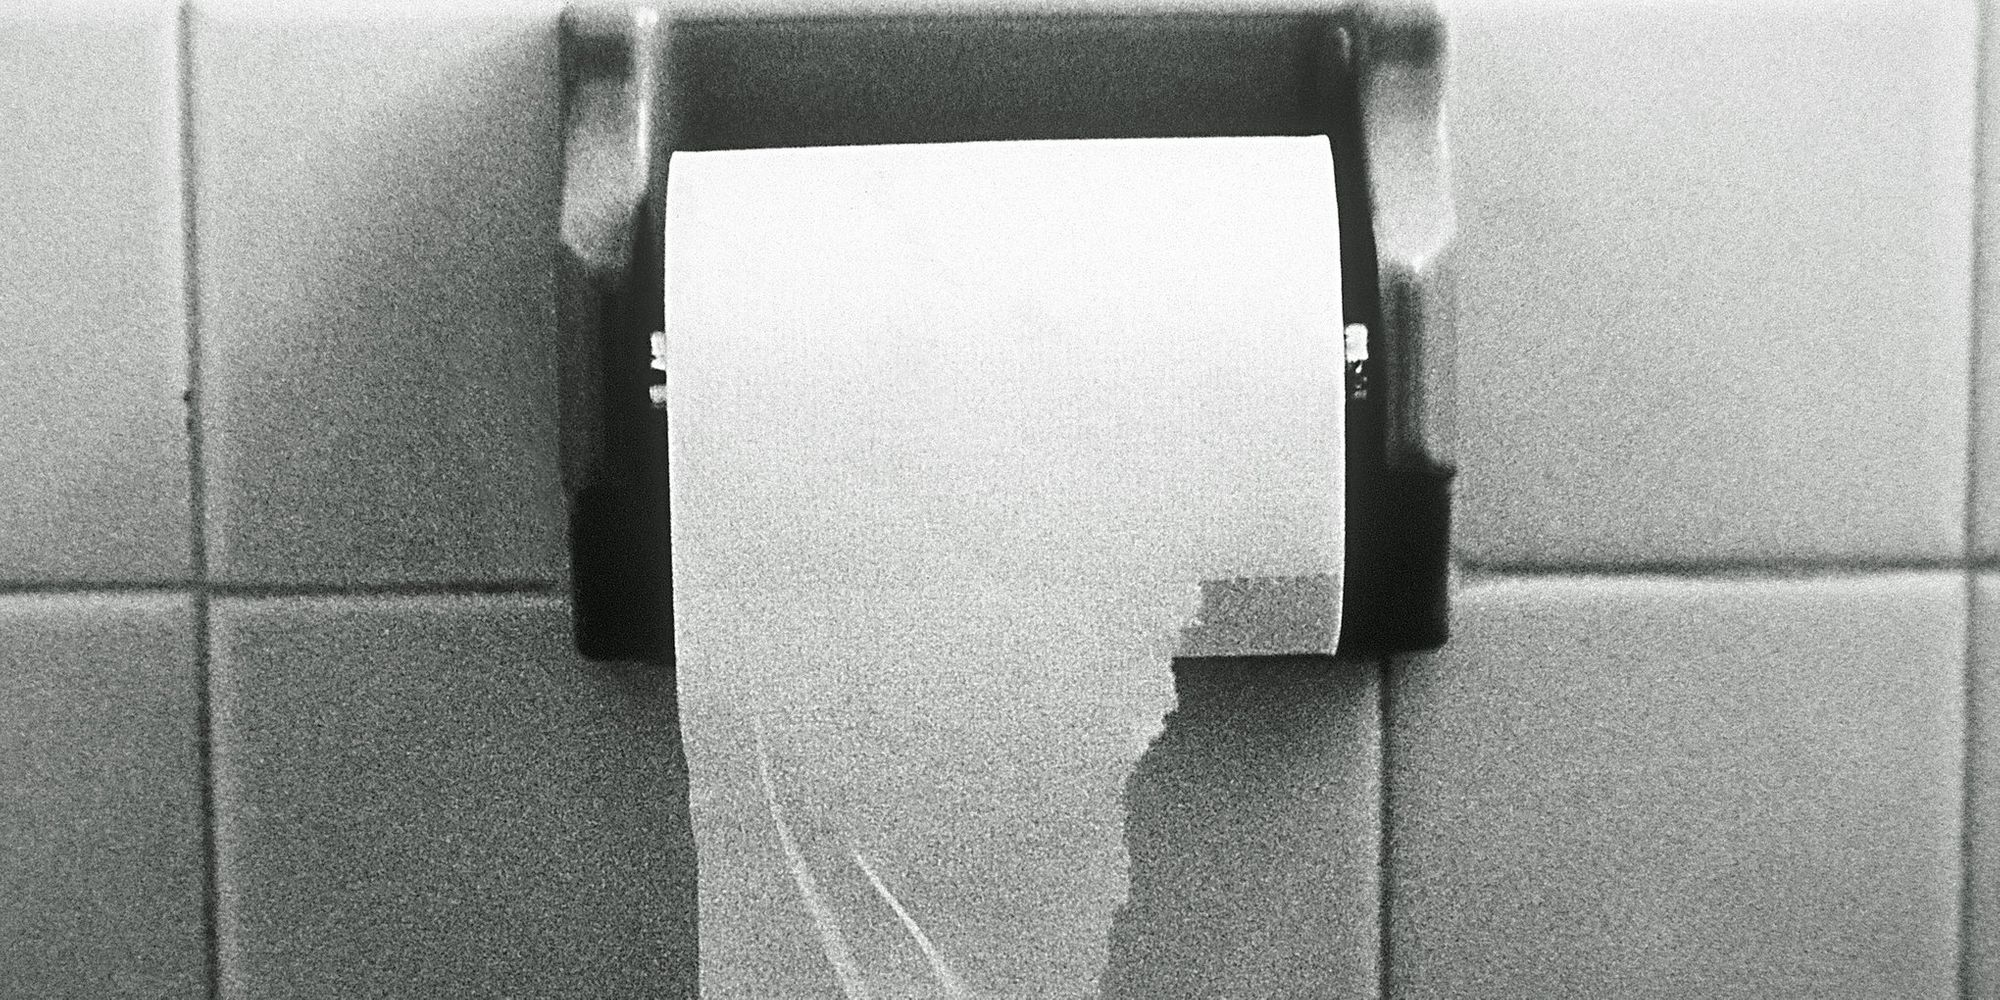 Covering The Toilet Seat With Tissue Paper Is It Safer